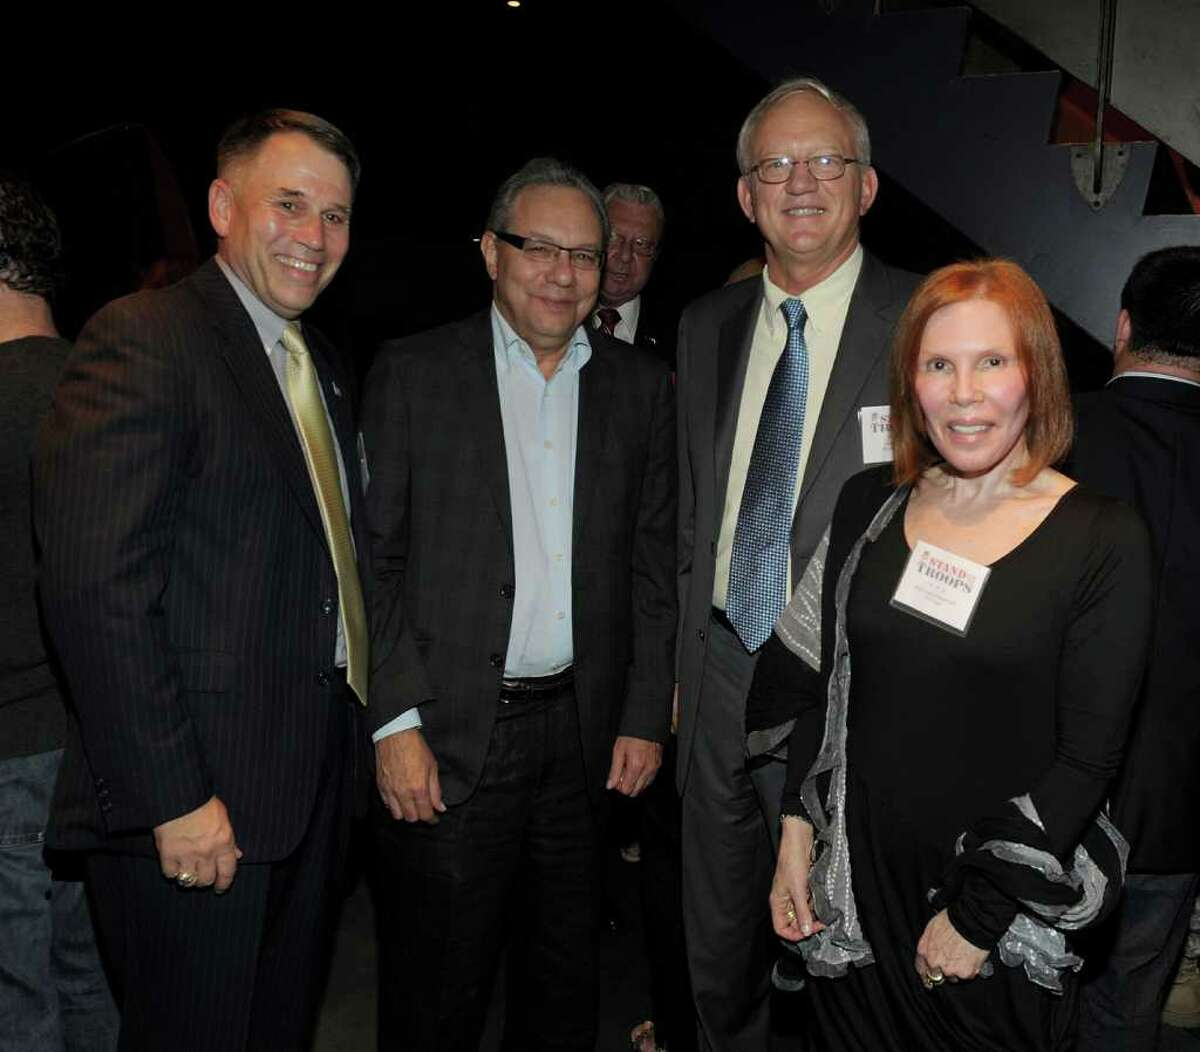 Left to right, Maj. Gen. John Batiste, comedian Lewis Black, Gen. Robert Mixum and Eilhys England attend the Stand Up For The Troops benefit at Carolines On Broadway in New York City Sept. 12, 2011. (Photo by Denise Truscello/WireImage)